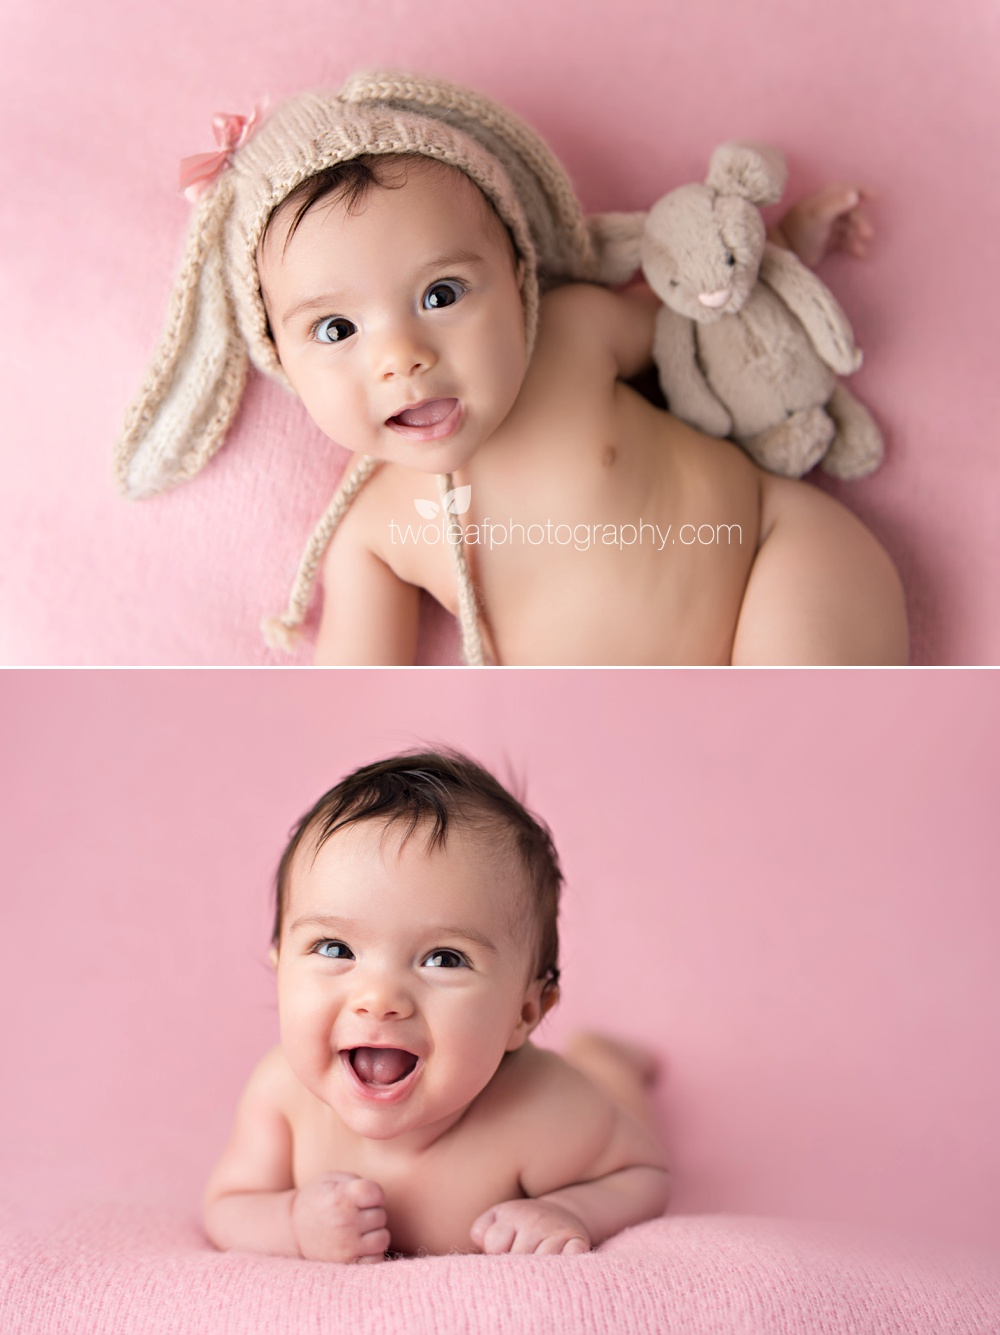 bergen-county-3-month-old-baby-photographer-bunny